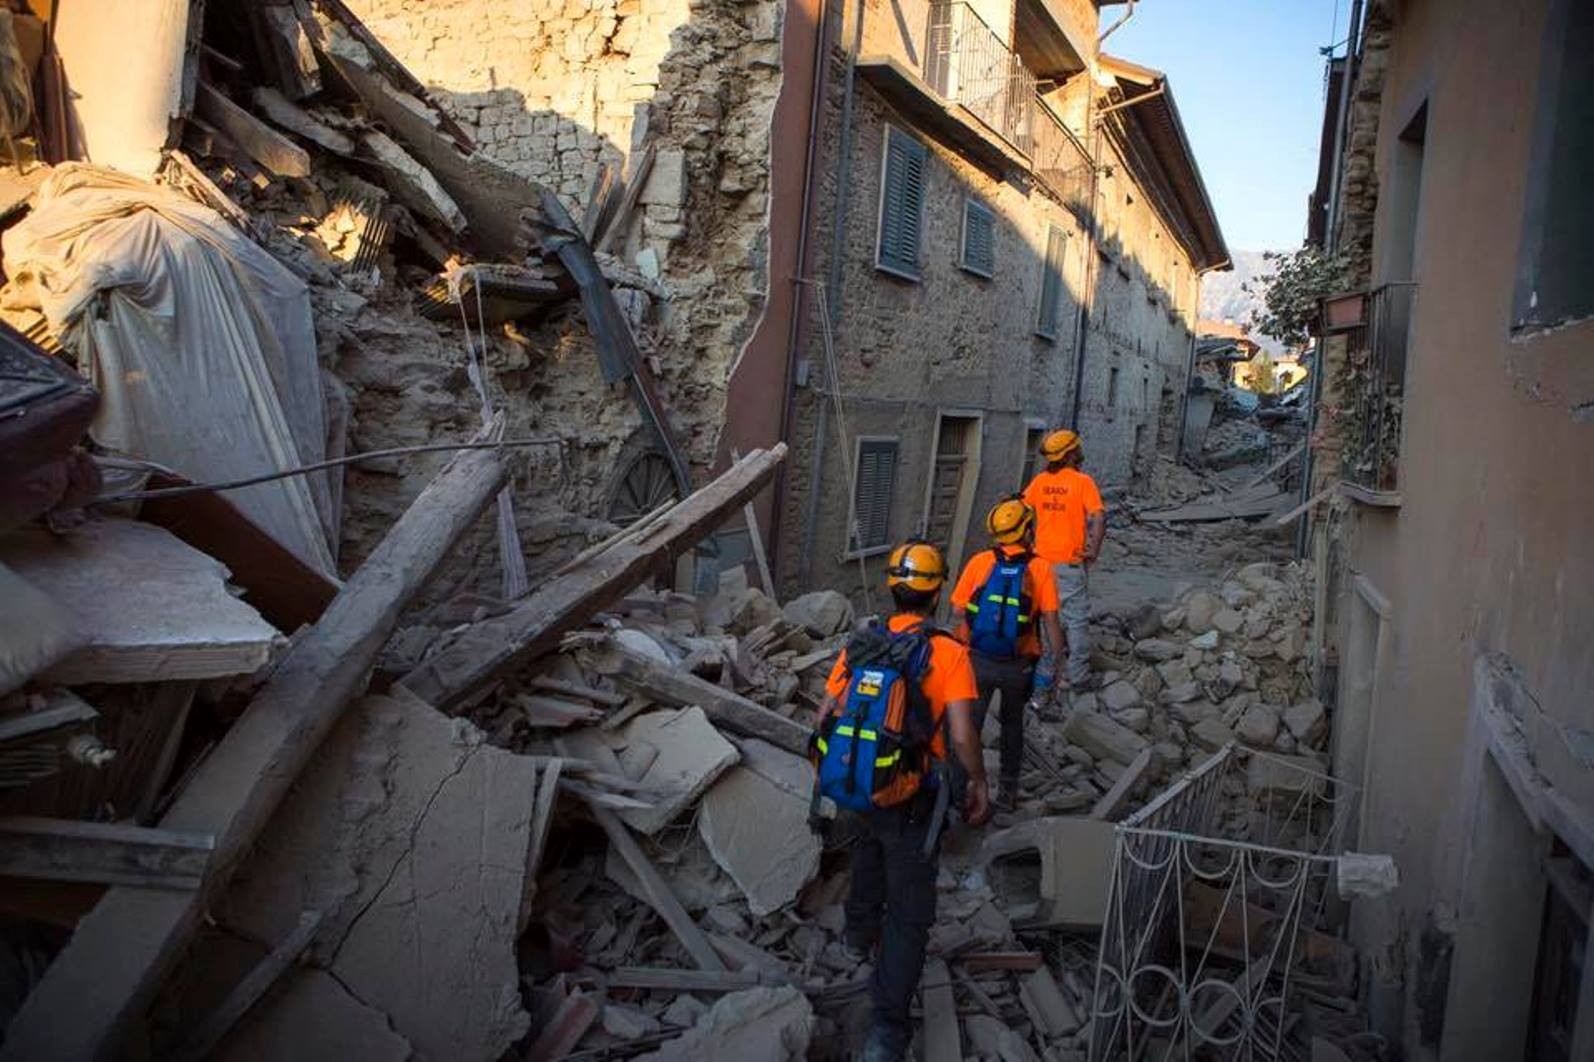 Israelis arrive to help local crews deal with the devastation in Amatrice. Photo via IsraAID Facebook page